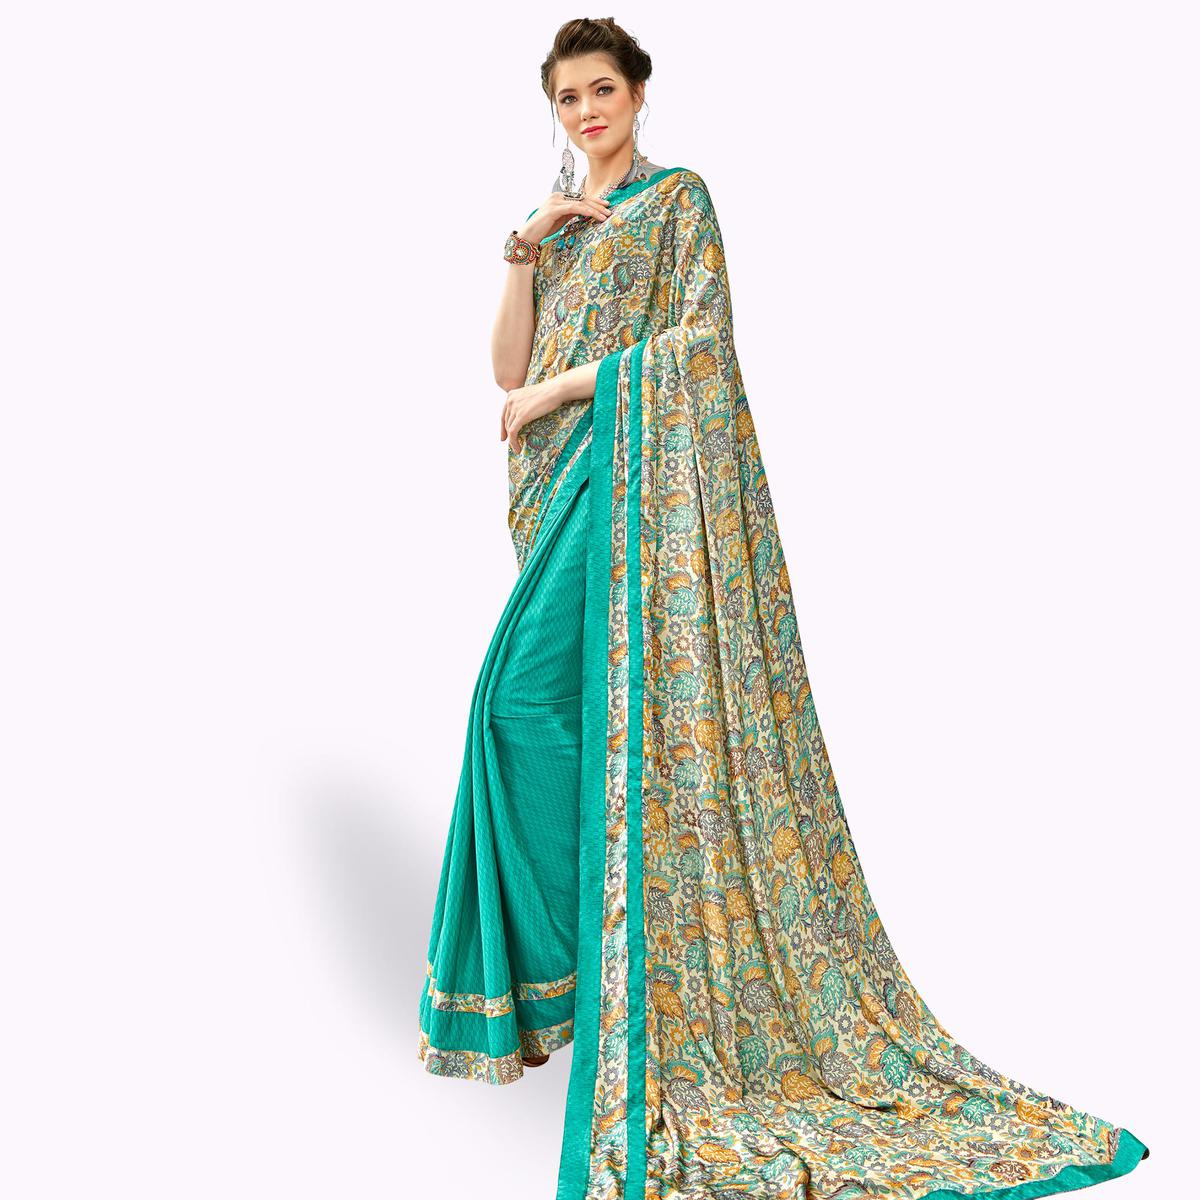 Appealing Turquoise Green Colored Casual Printed Crepe Half-Half Saree